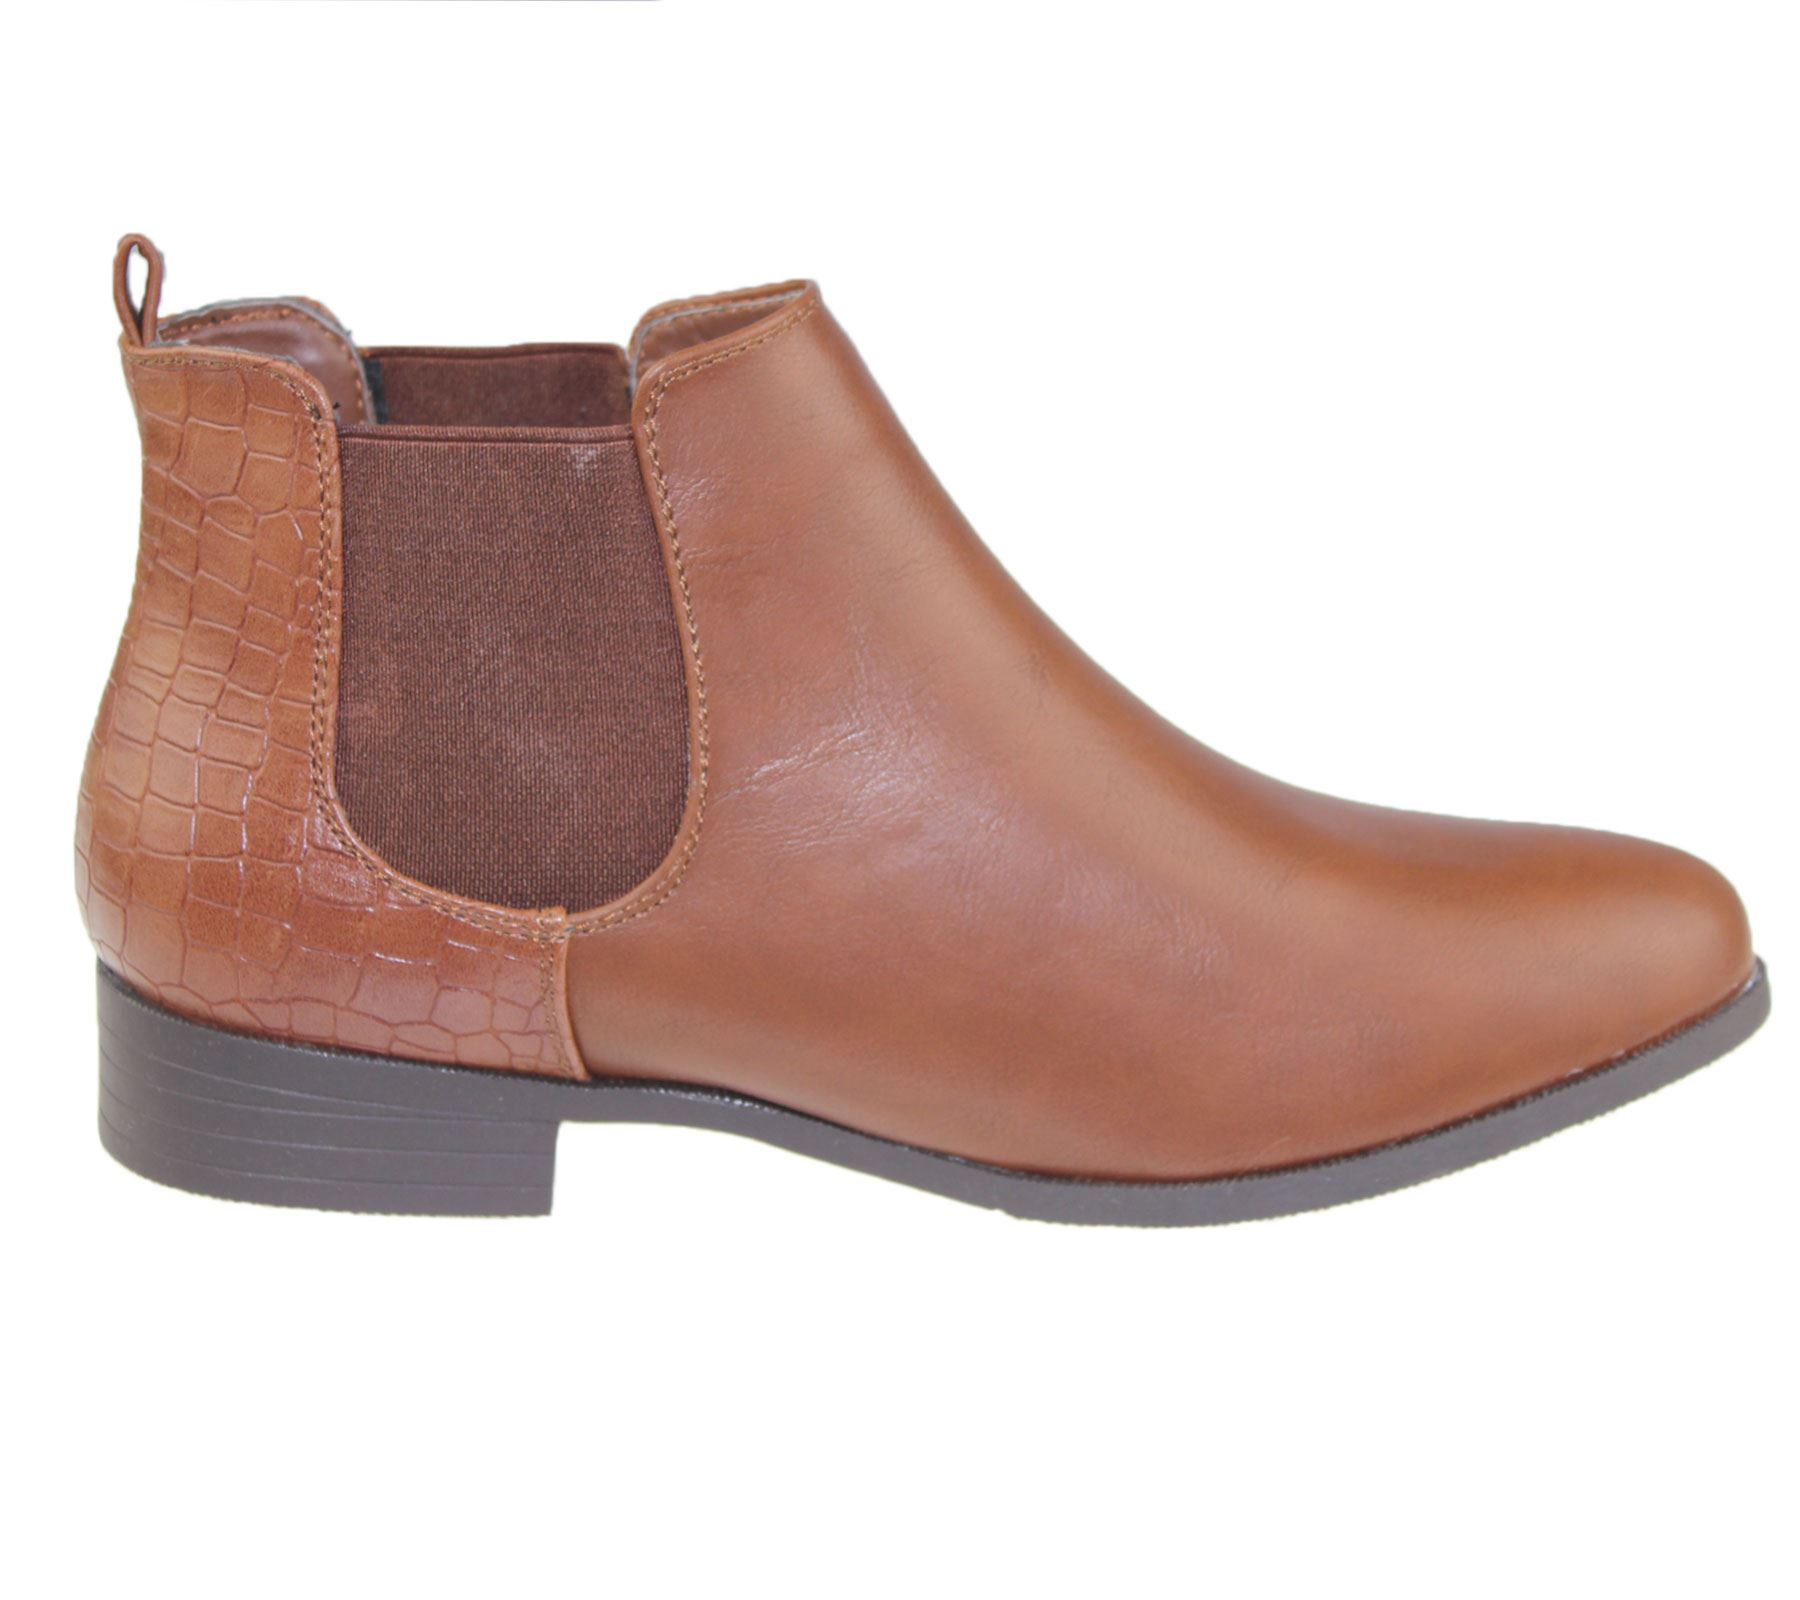 Womens-Ankle-Boots-Ladies-Chelsea-High-Top-Casual-Riding-Elasticated-Shoes-Size thumbnail 6